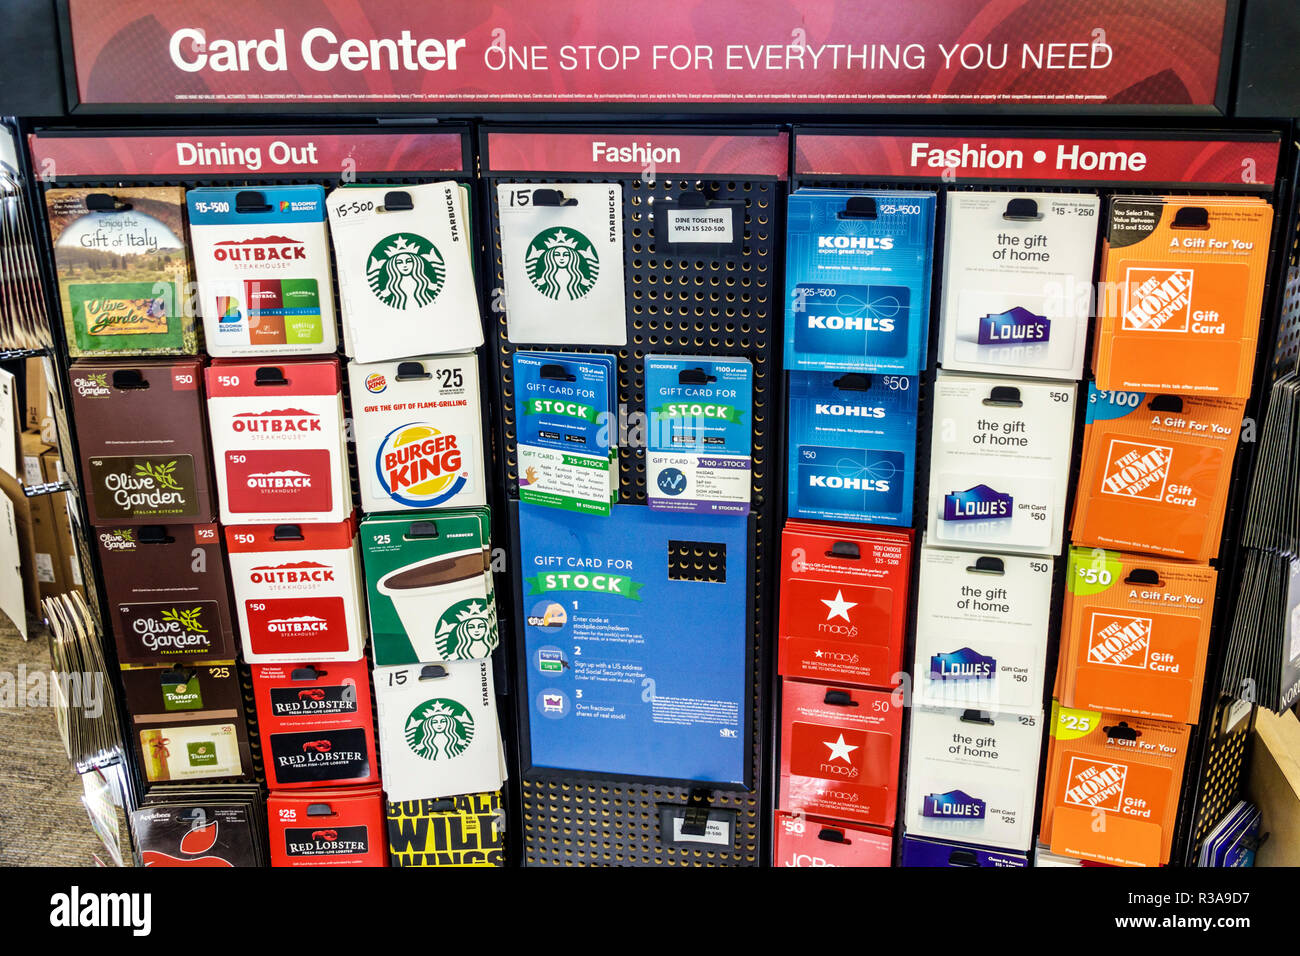 Miami Beach Florida Office Depot Inside Business Display Sale Gift